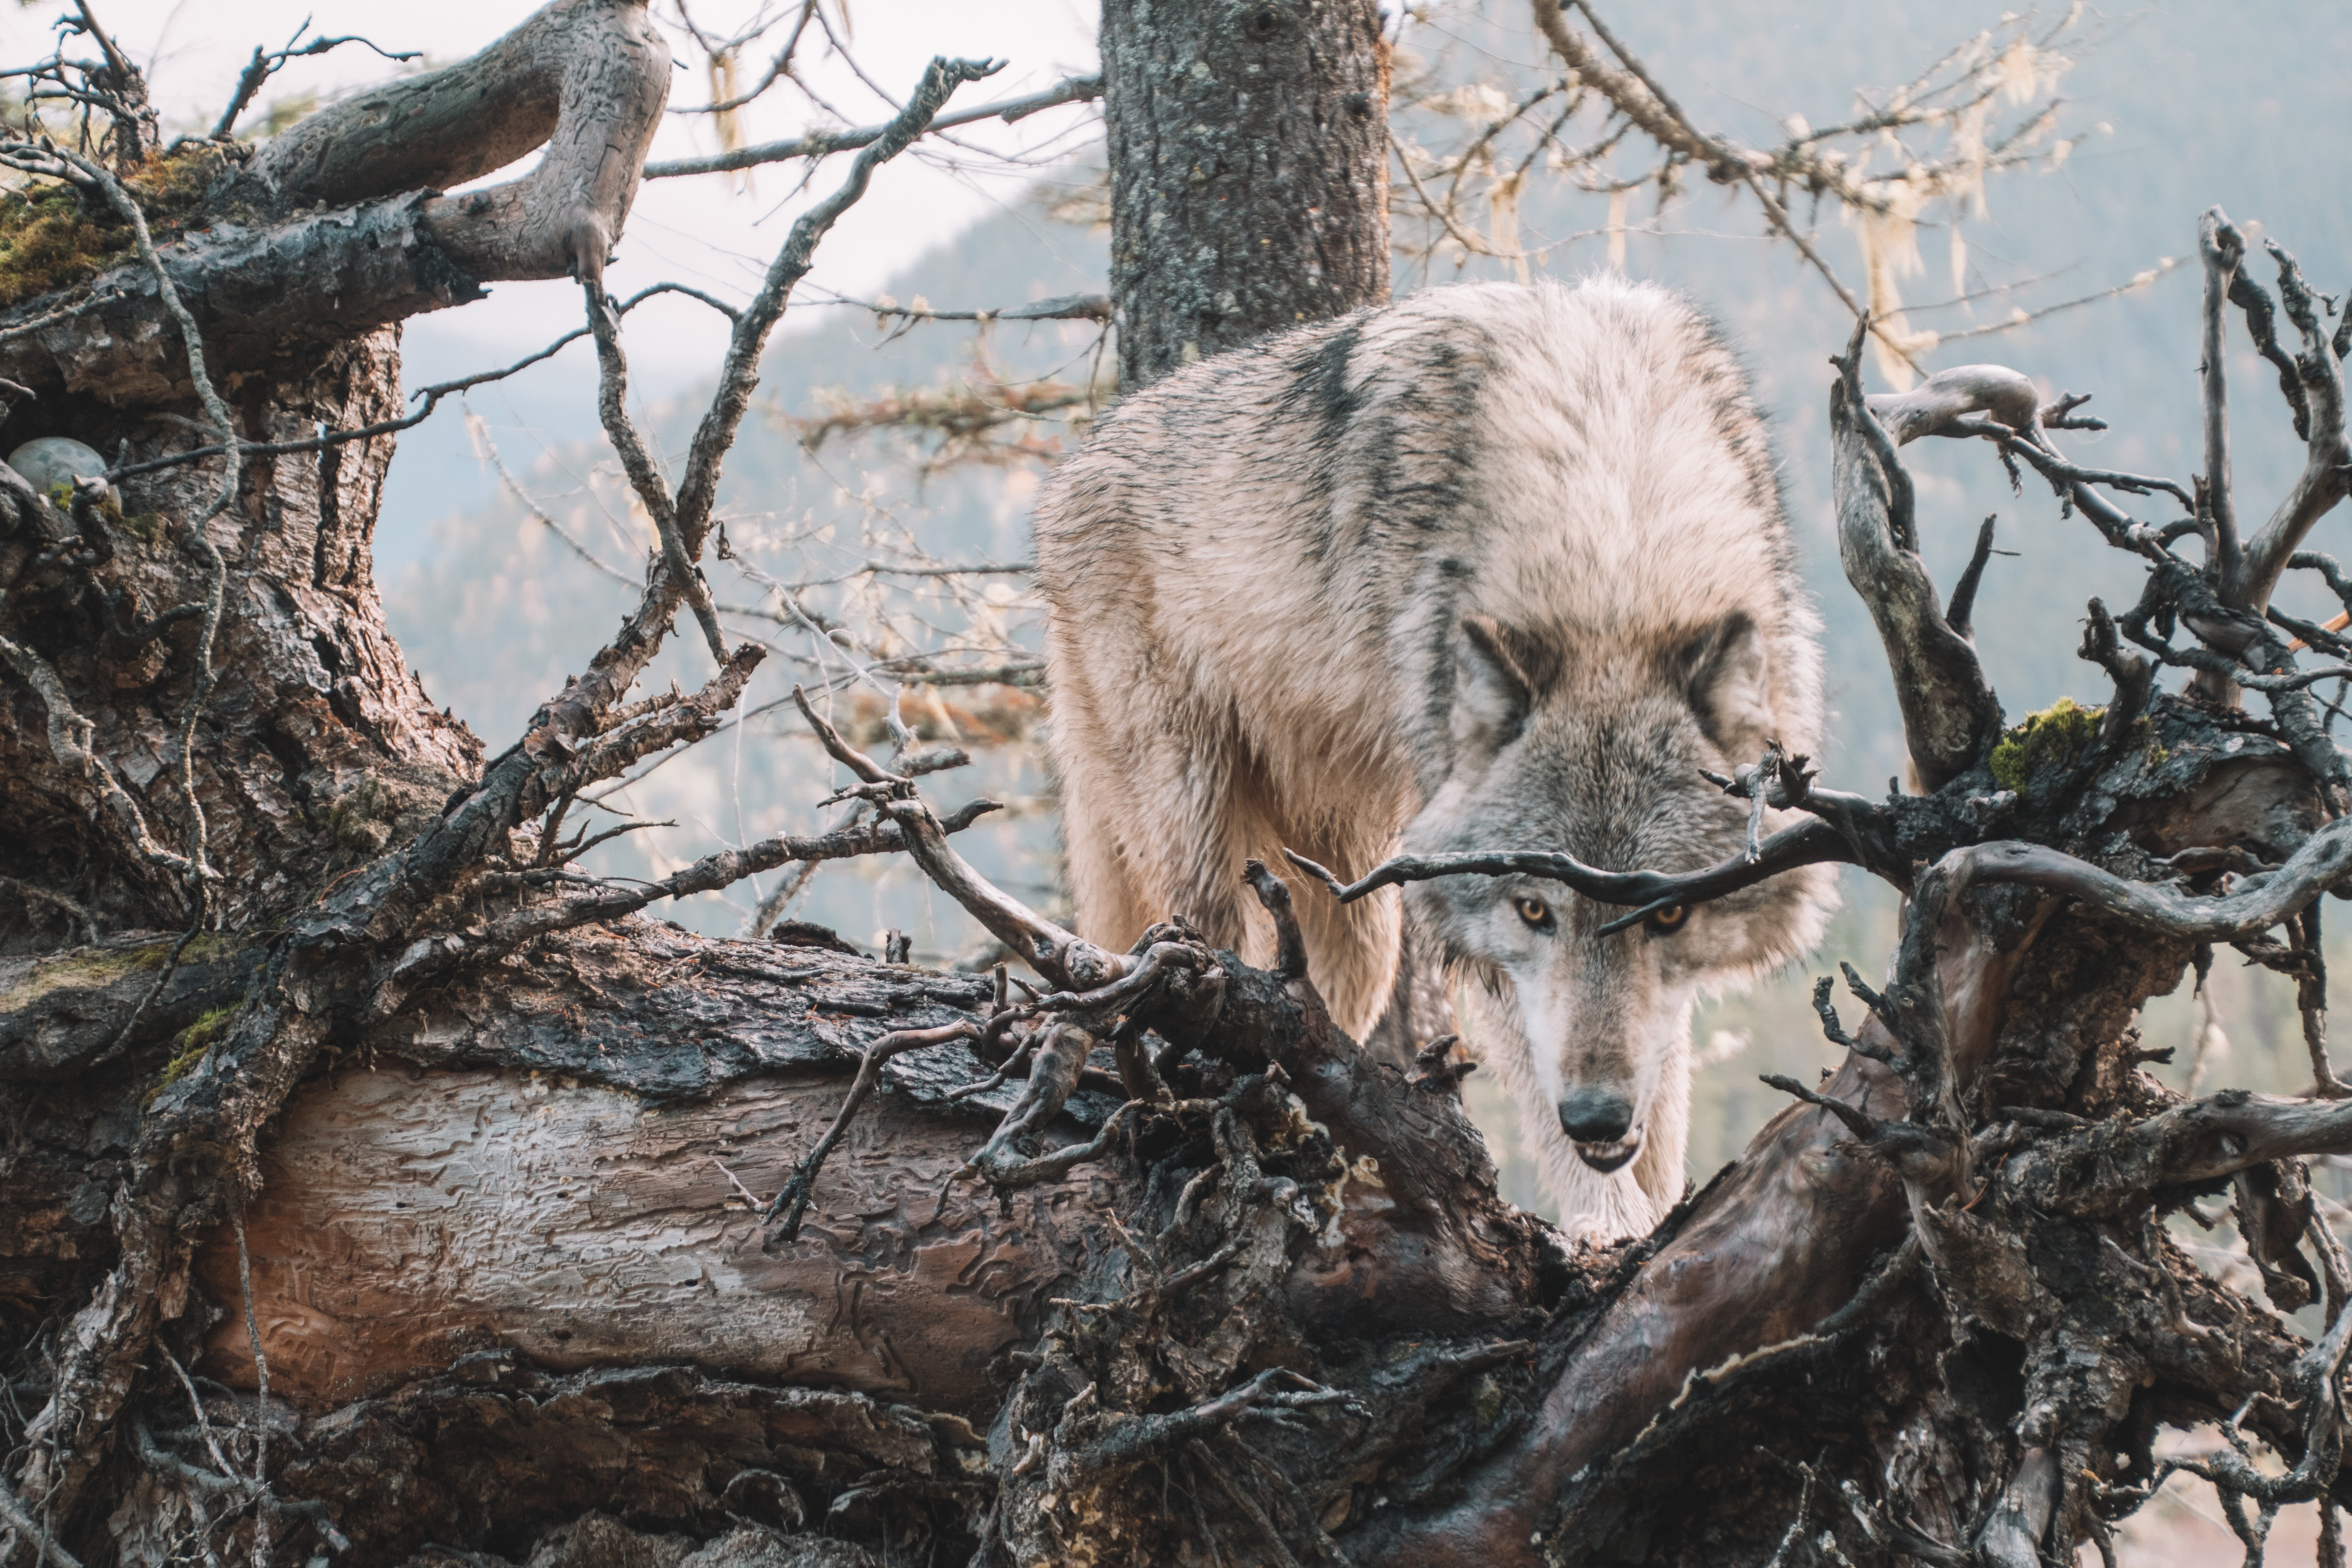 134775 download wallpaper Animals, Wolf, Predator, Grin, Wood, Tree, Branches, Wildlife screensavers and pictures for free